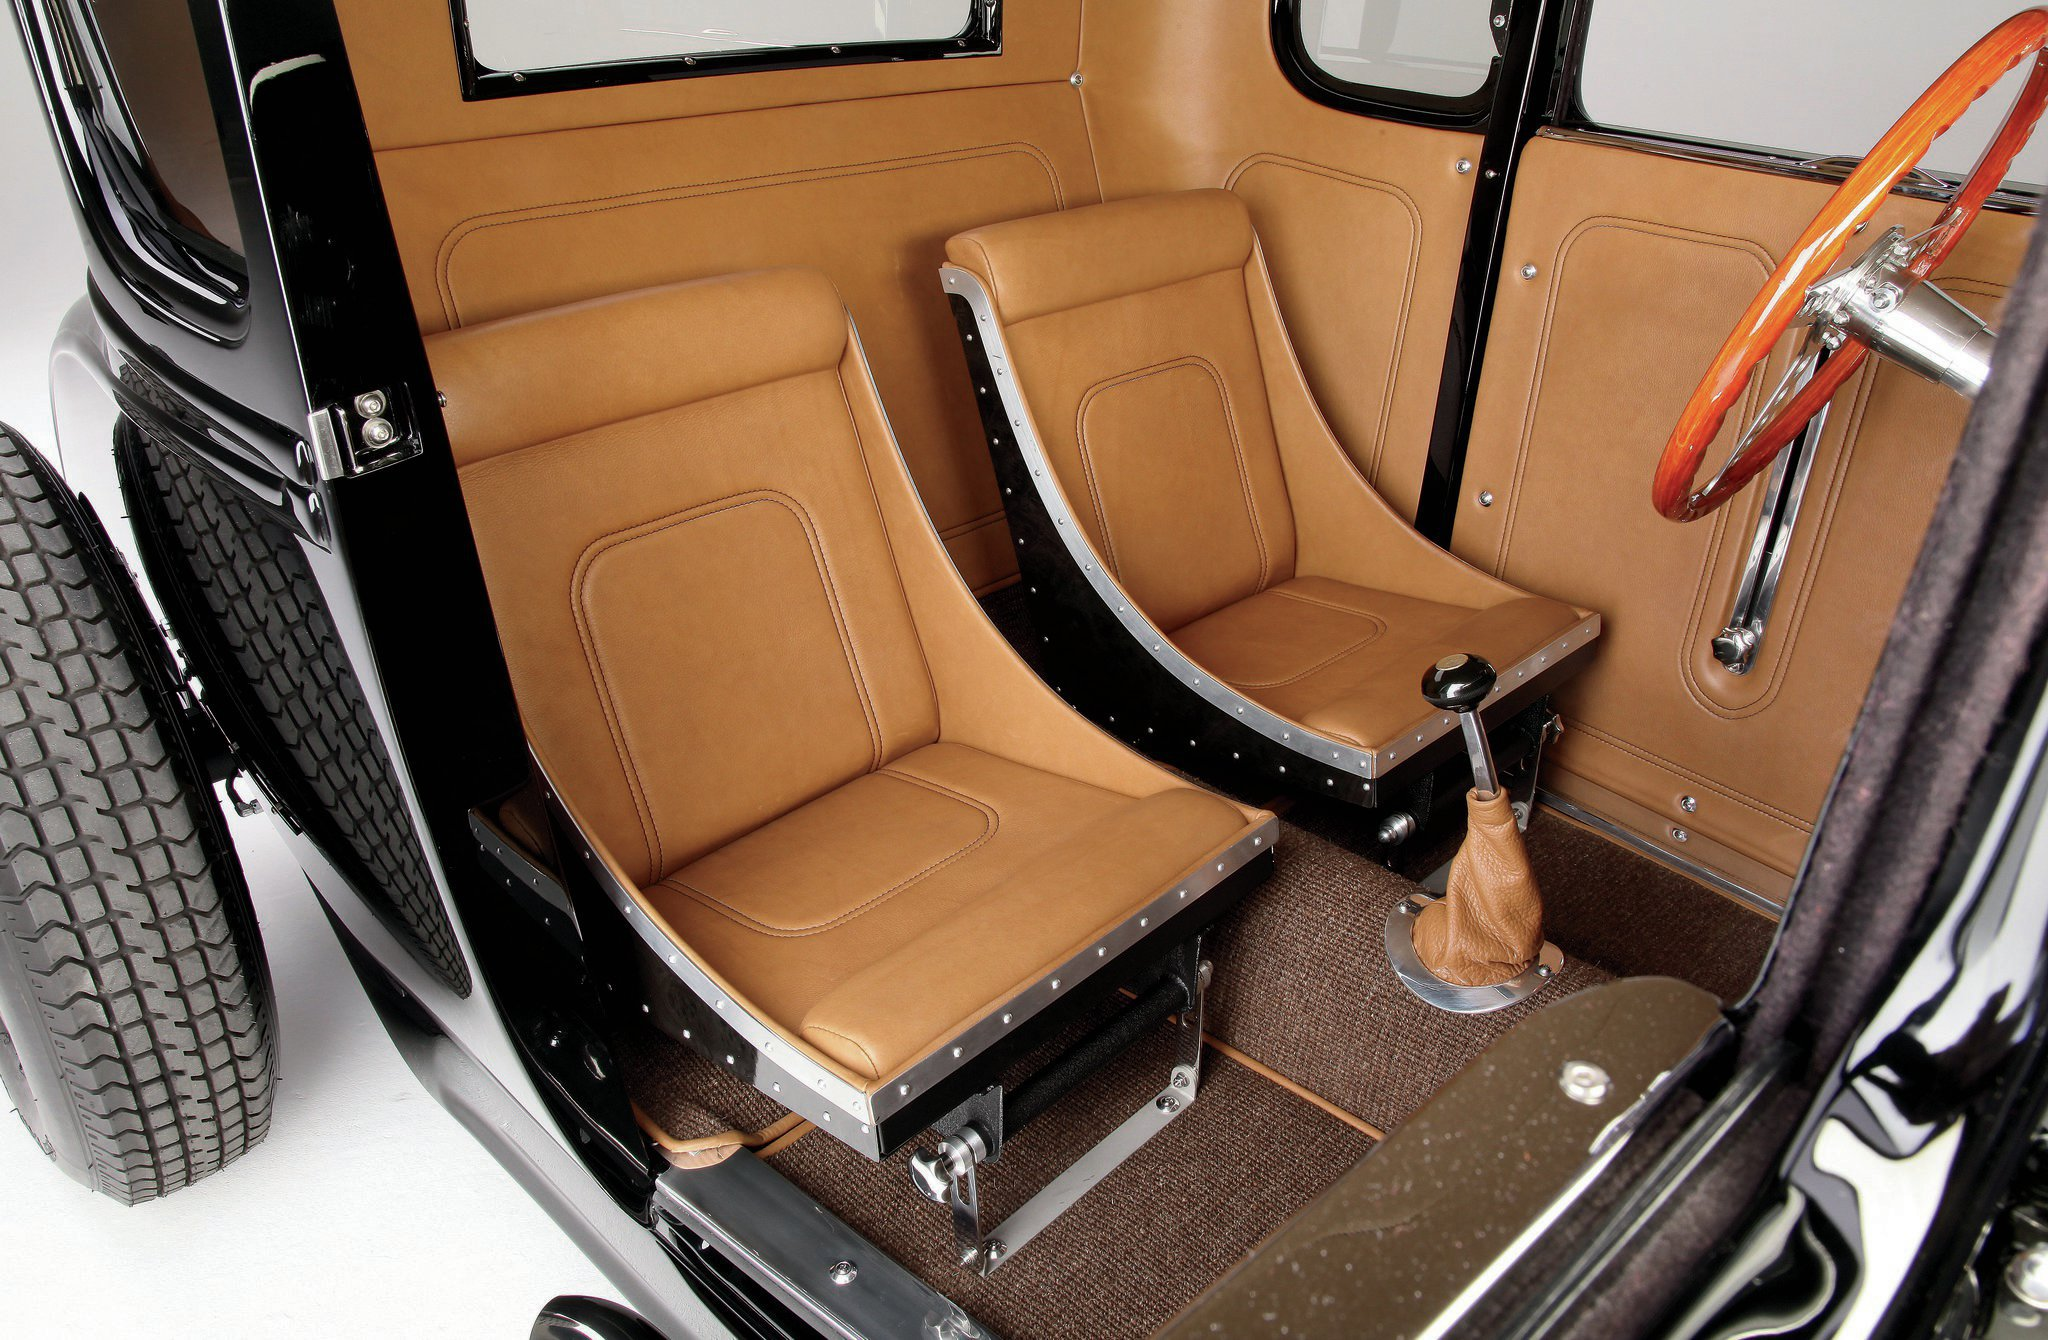 McCarter used leather to cover them, and used the material on the door panels and the rest of the interior, too.